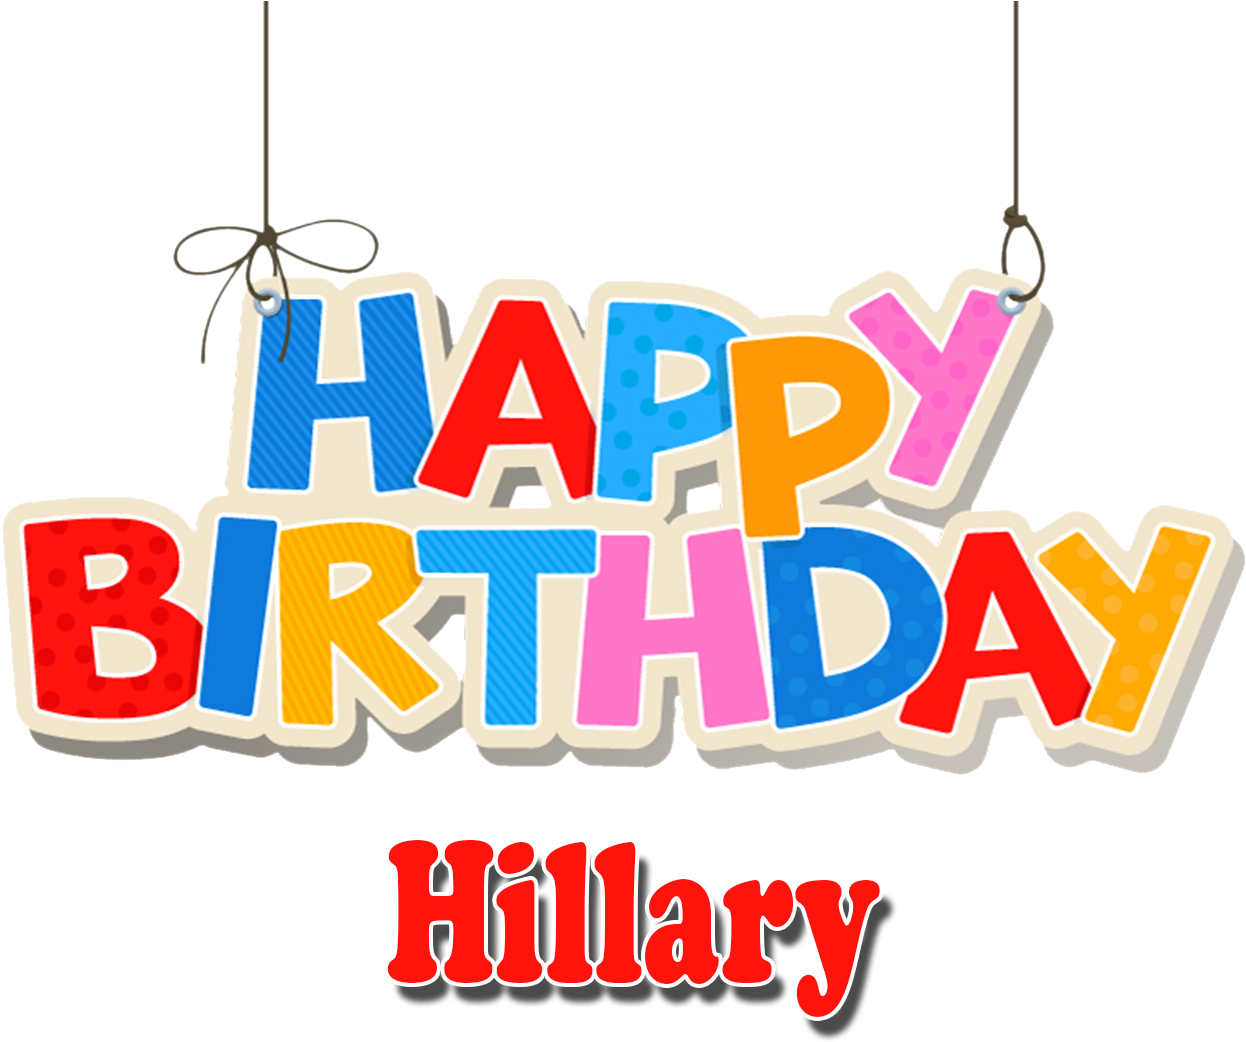 Download Happy Birthday Mary Png Full Size Png Image Pngkit